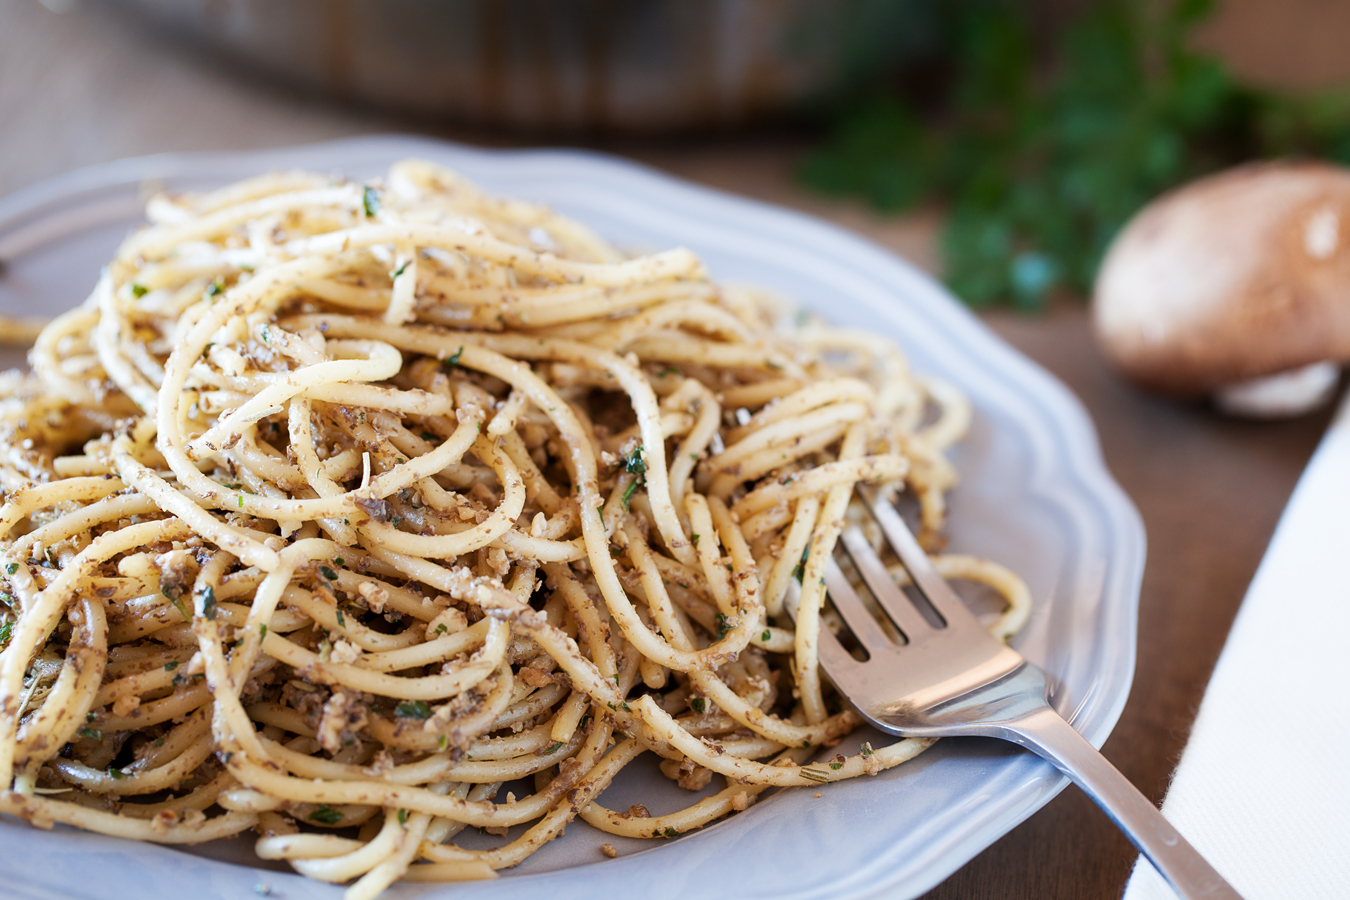 Walnut & Mushroom Pesto - Flavorful, earthy, and impressive enough to be spotted on a fancy schmancy restaurant menu.